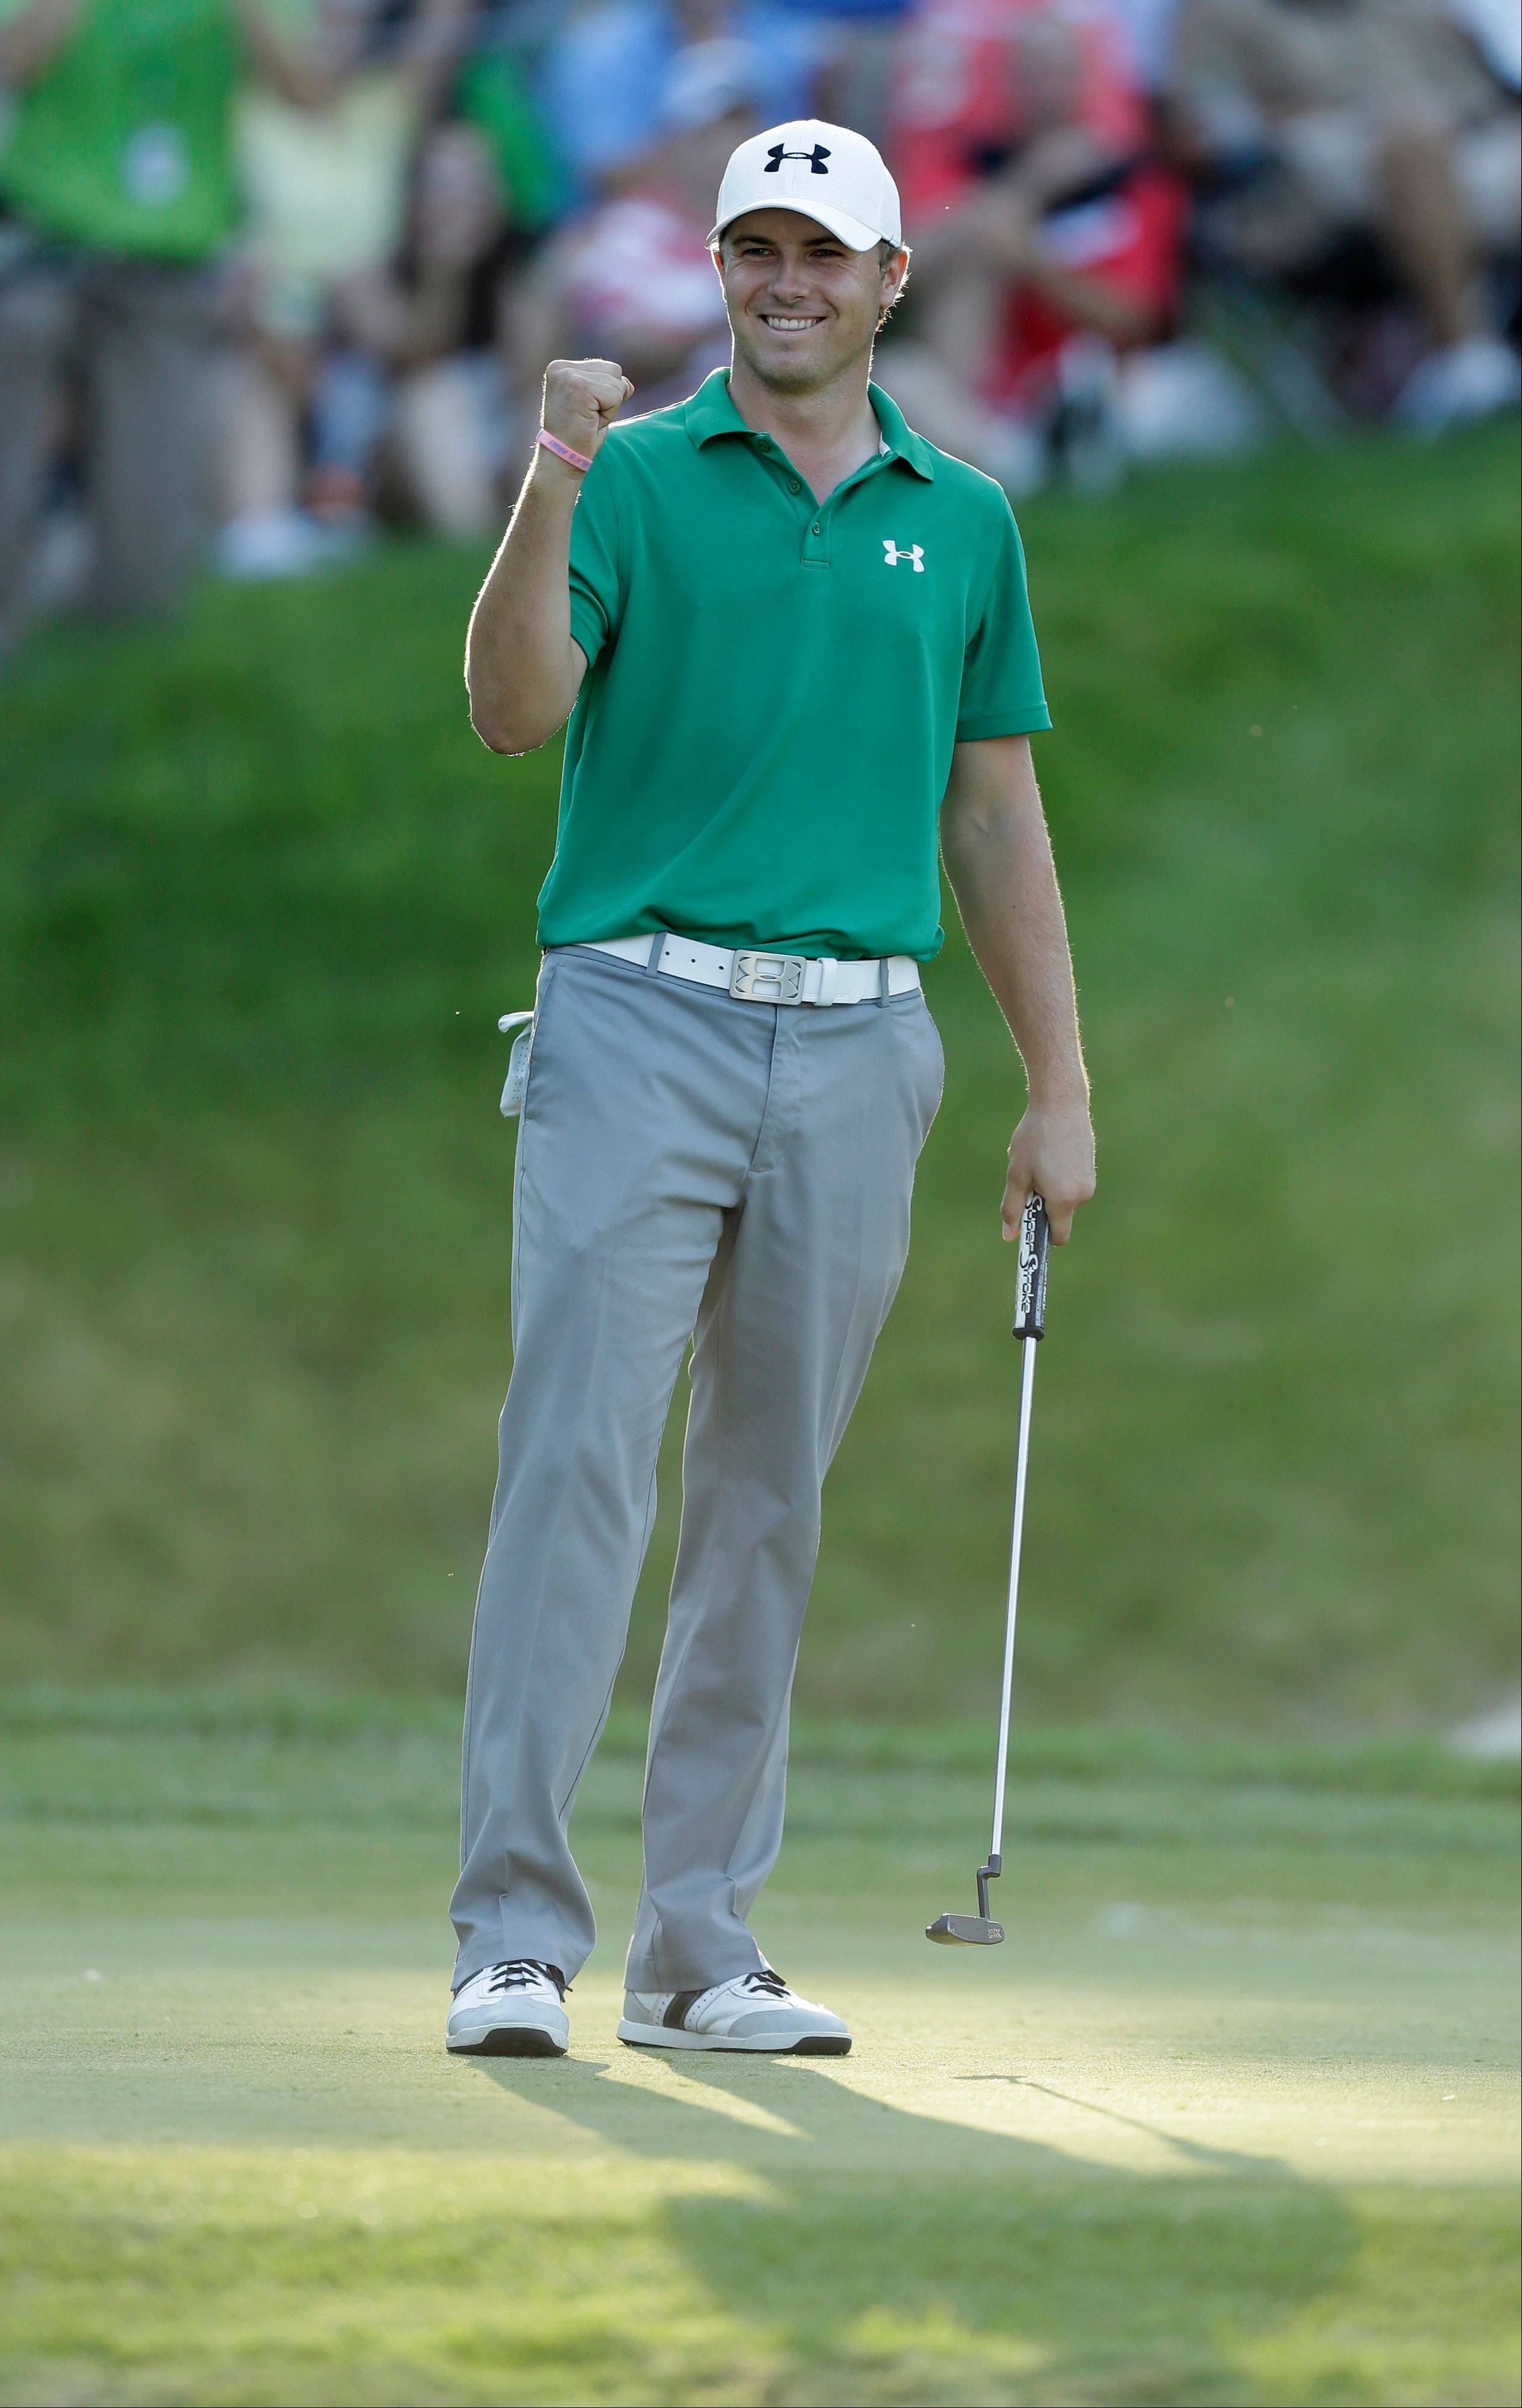 Jordan Spieth reacts after winning the John Deere Classic on Sunday at TPC Deere Run. Spieth, who is two weeks away from his 20th birthday, defeated Zach Johnson and David Hearn in a five-hole sudden-death playoff.